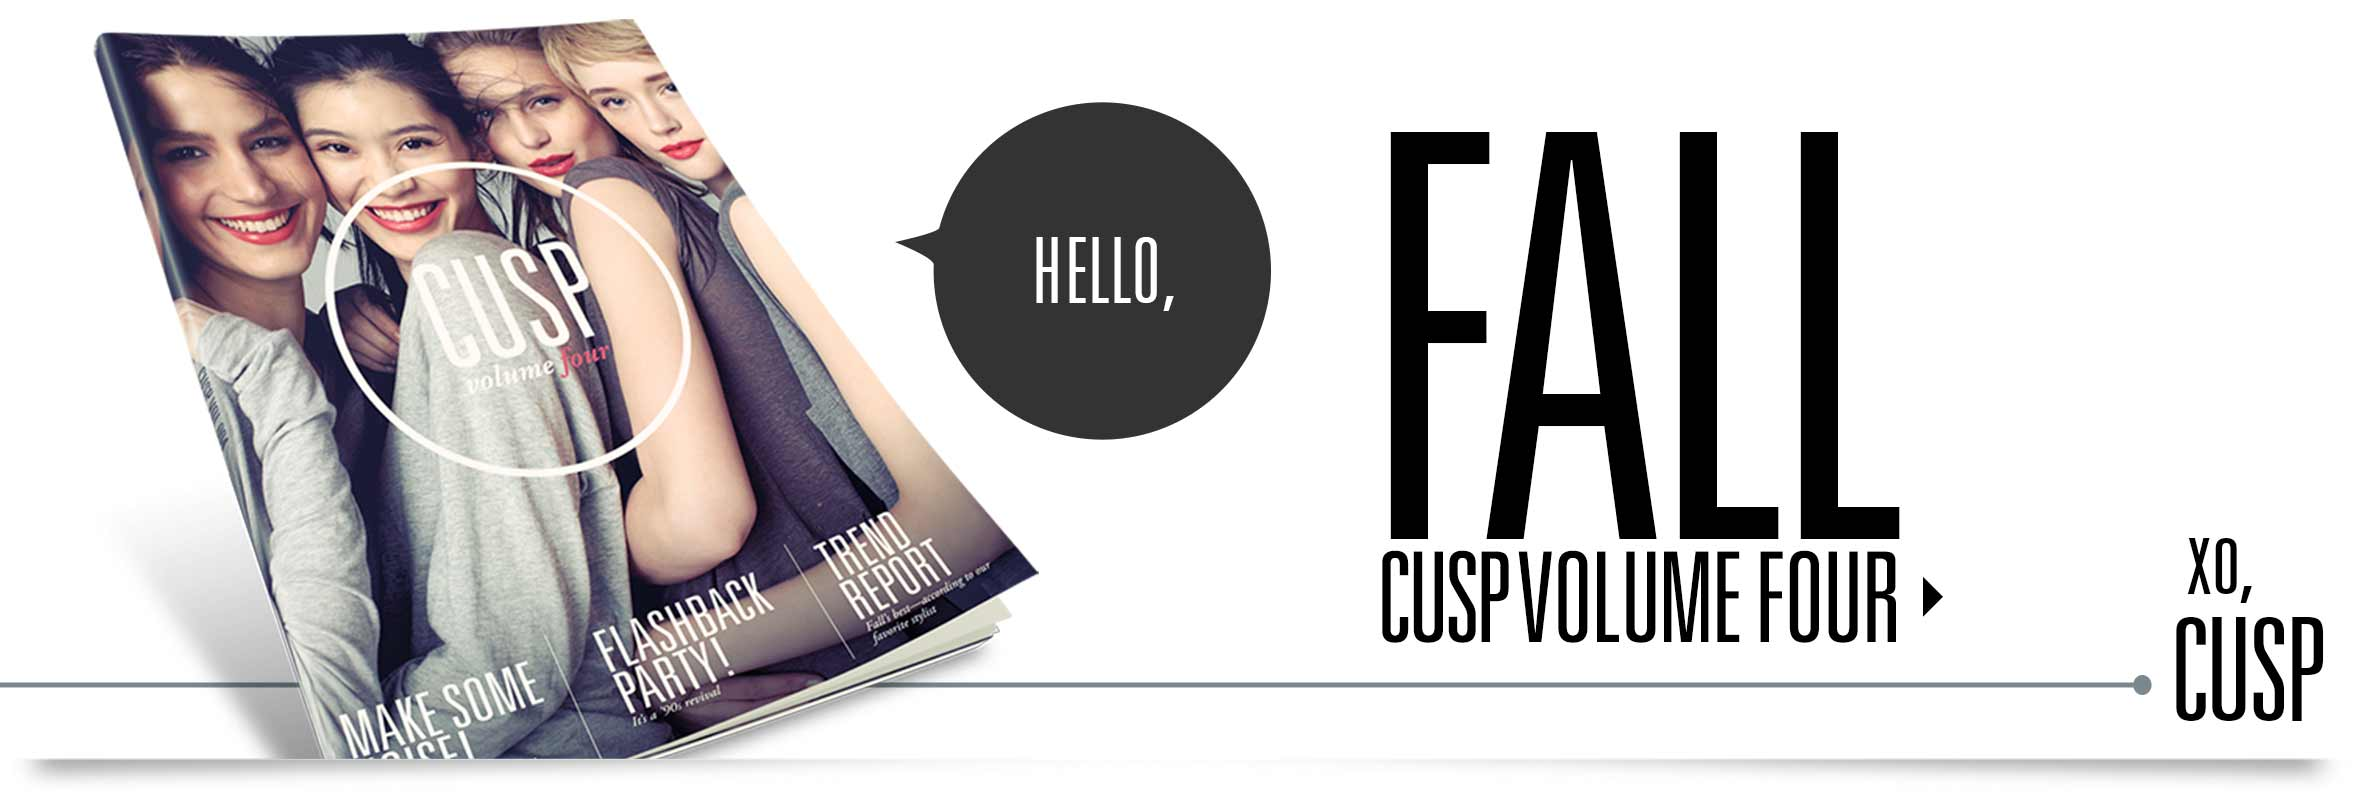 CUSP volume four is here